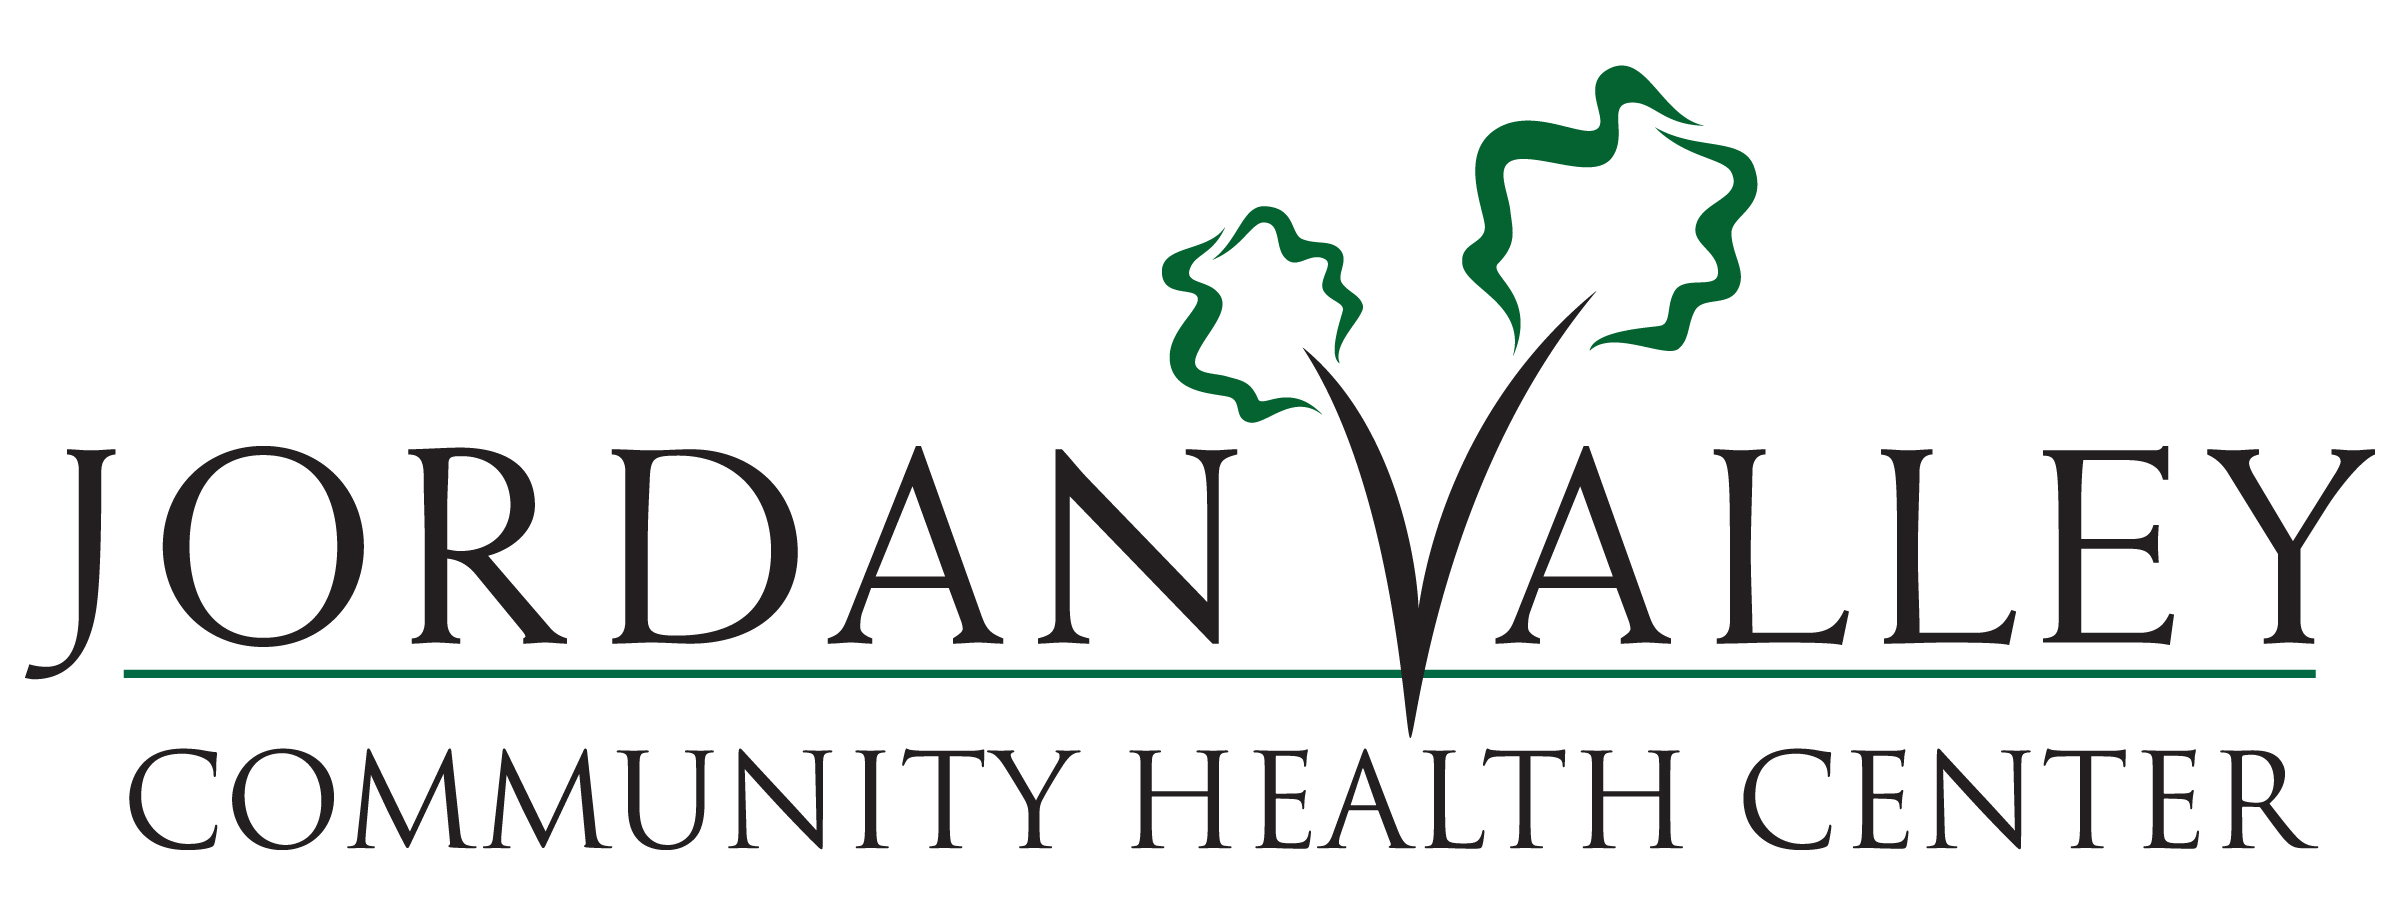 Jordan Valley Community Health Center